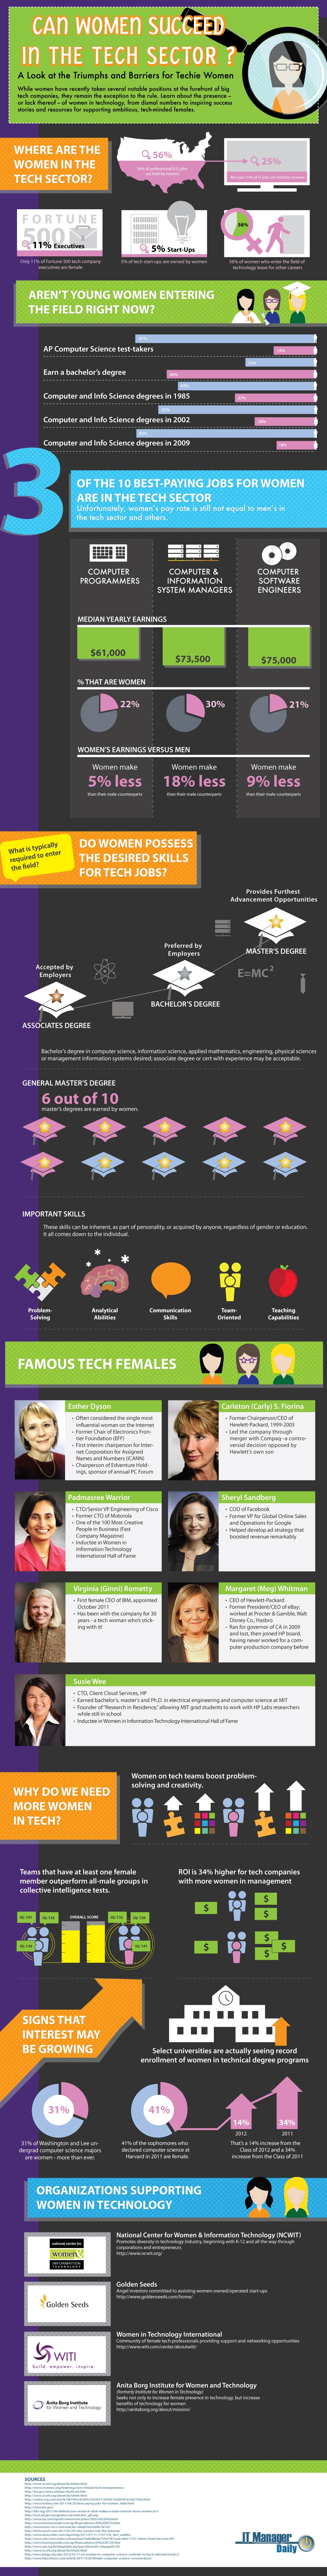 Women in tech infographic